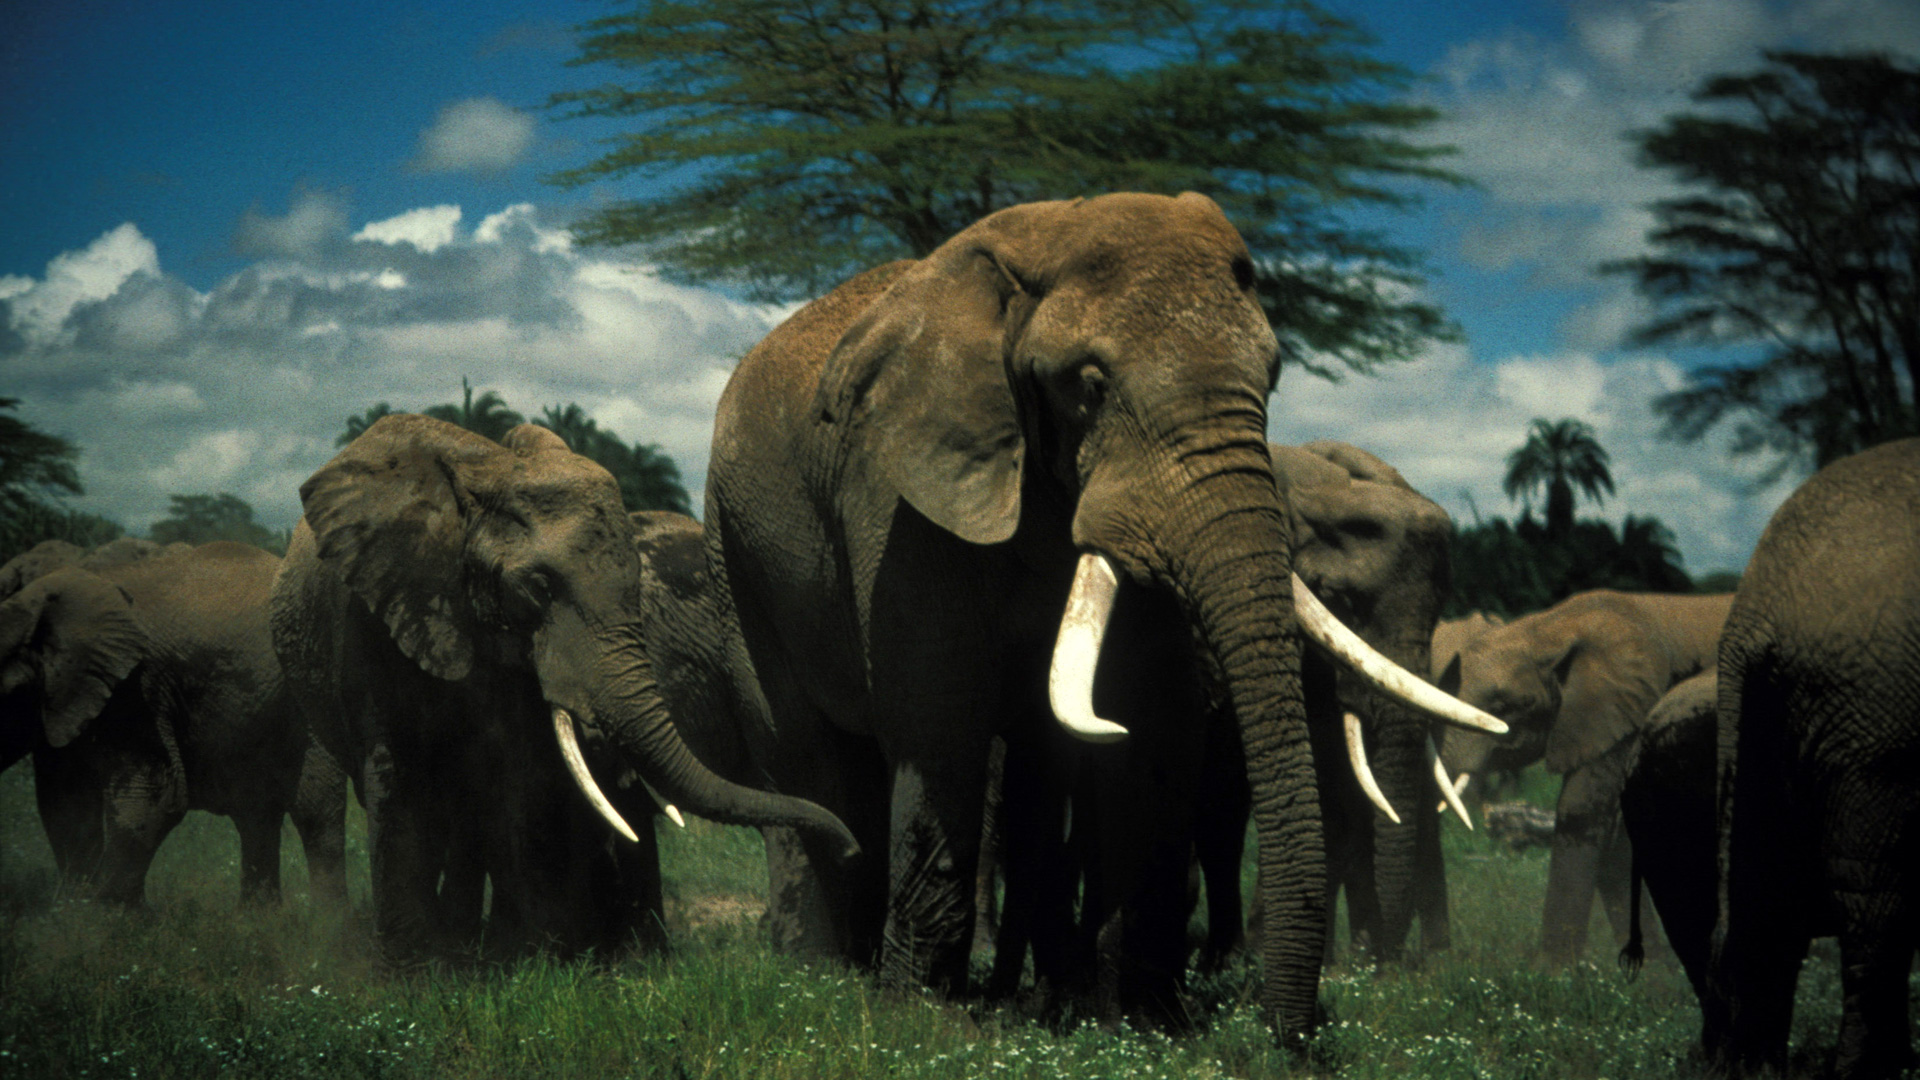 Elephants are large mammals of the family Elephantidae and the order Proboscidea.